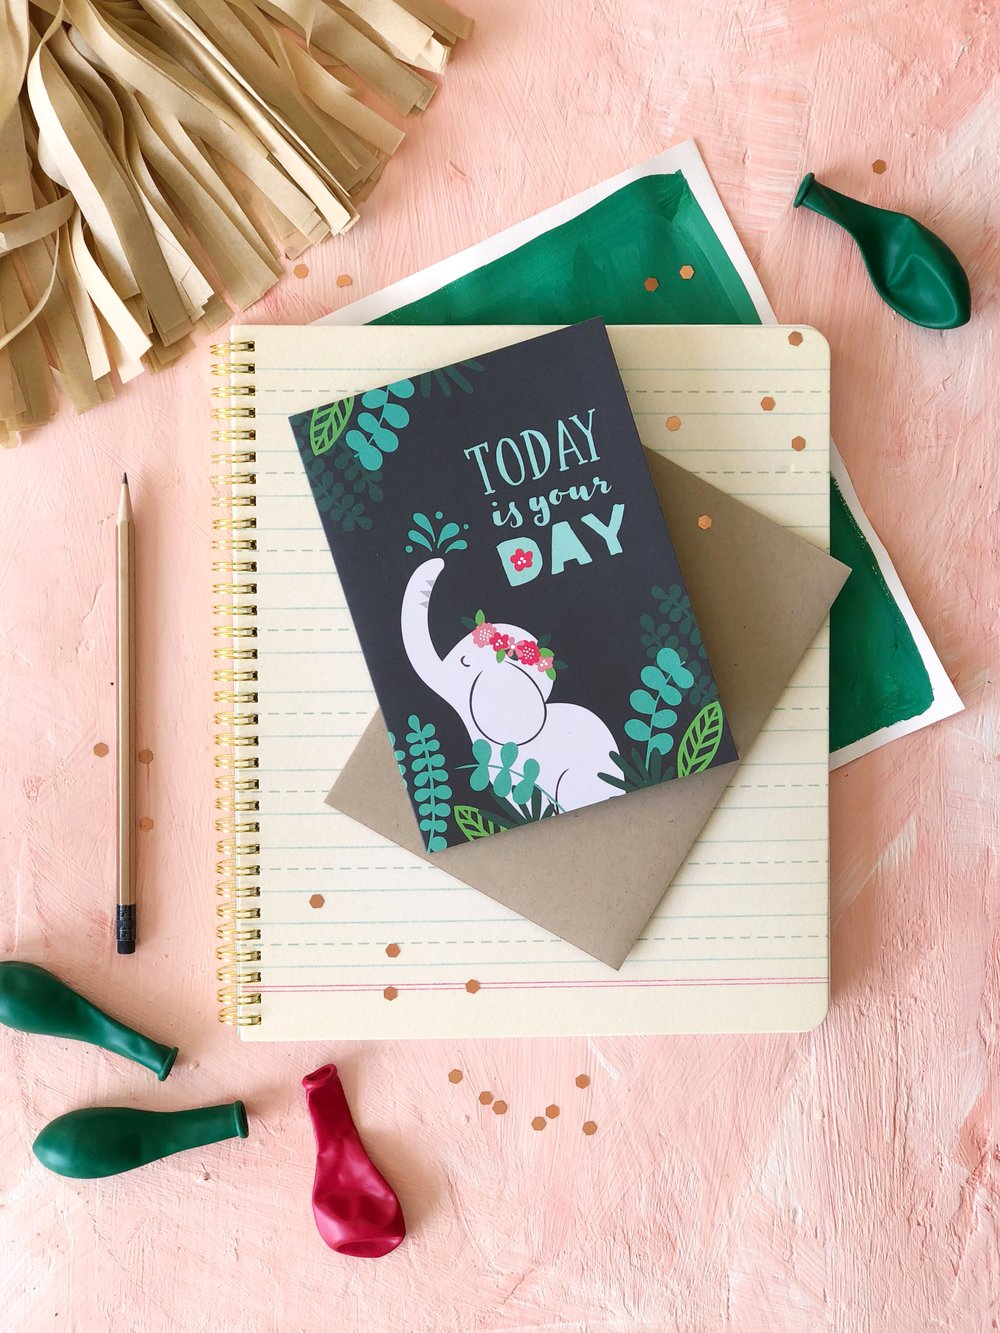 Elephant Birthday Card at Target | Designed by Pace Creative Design Studio